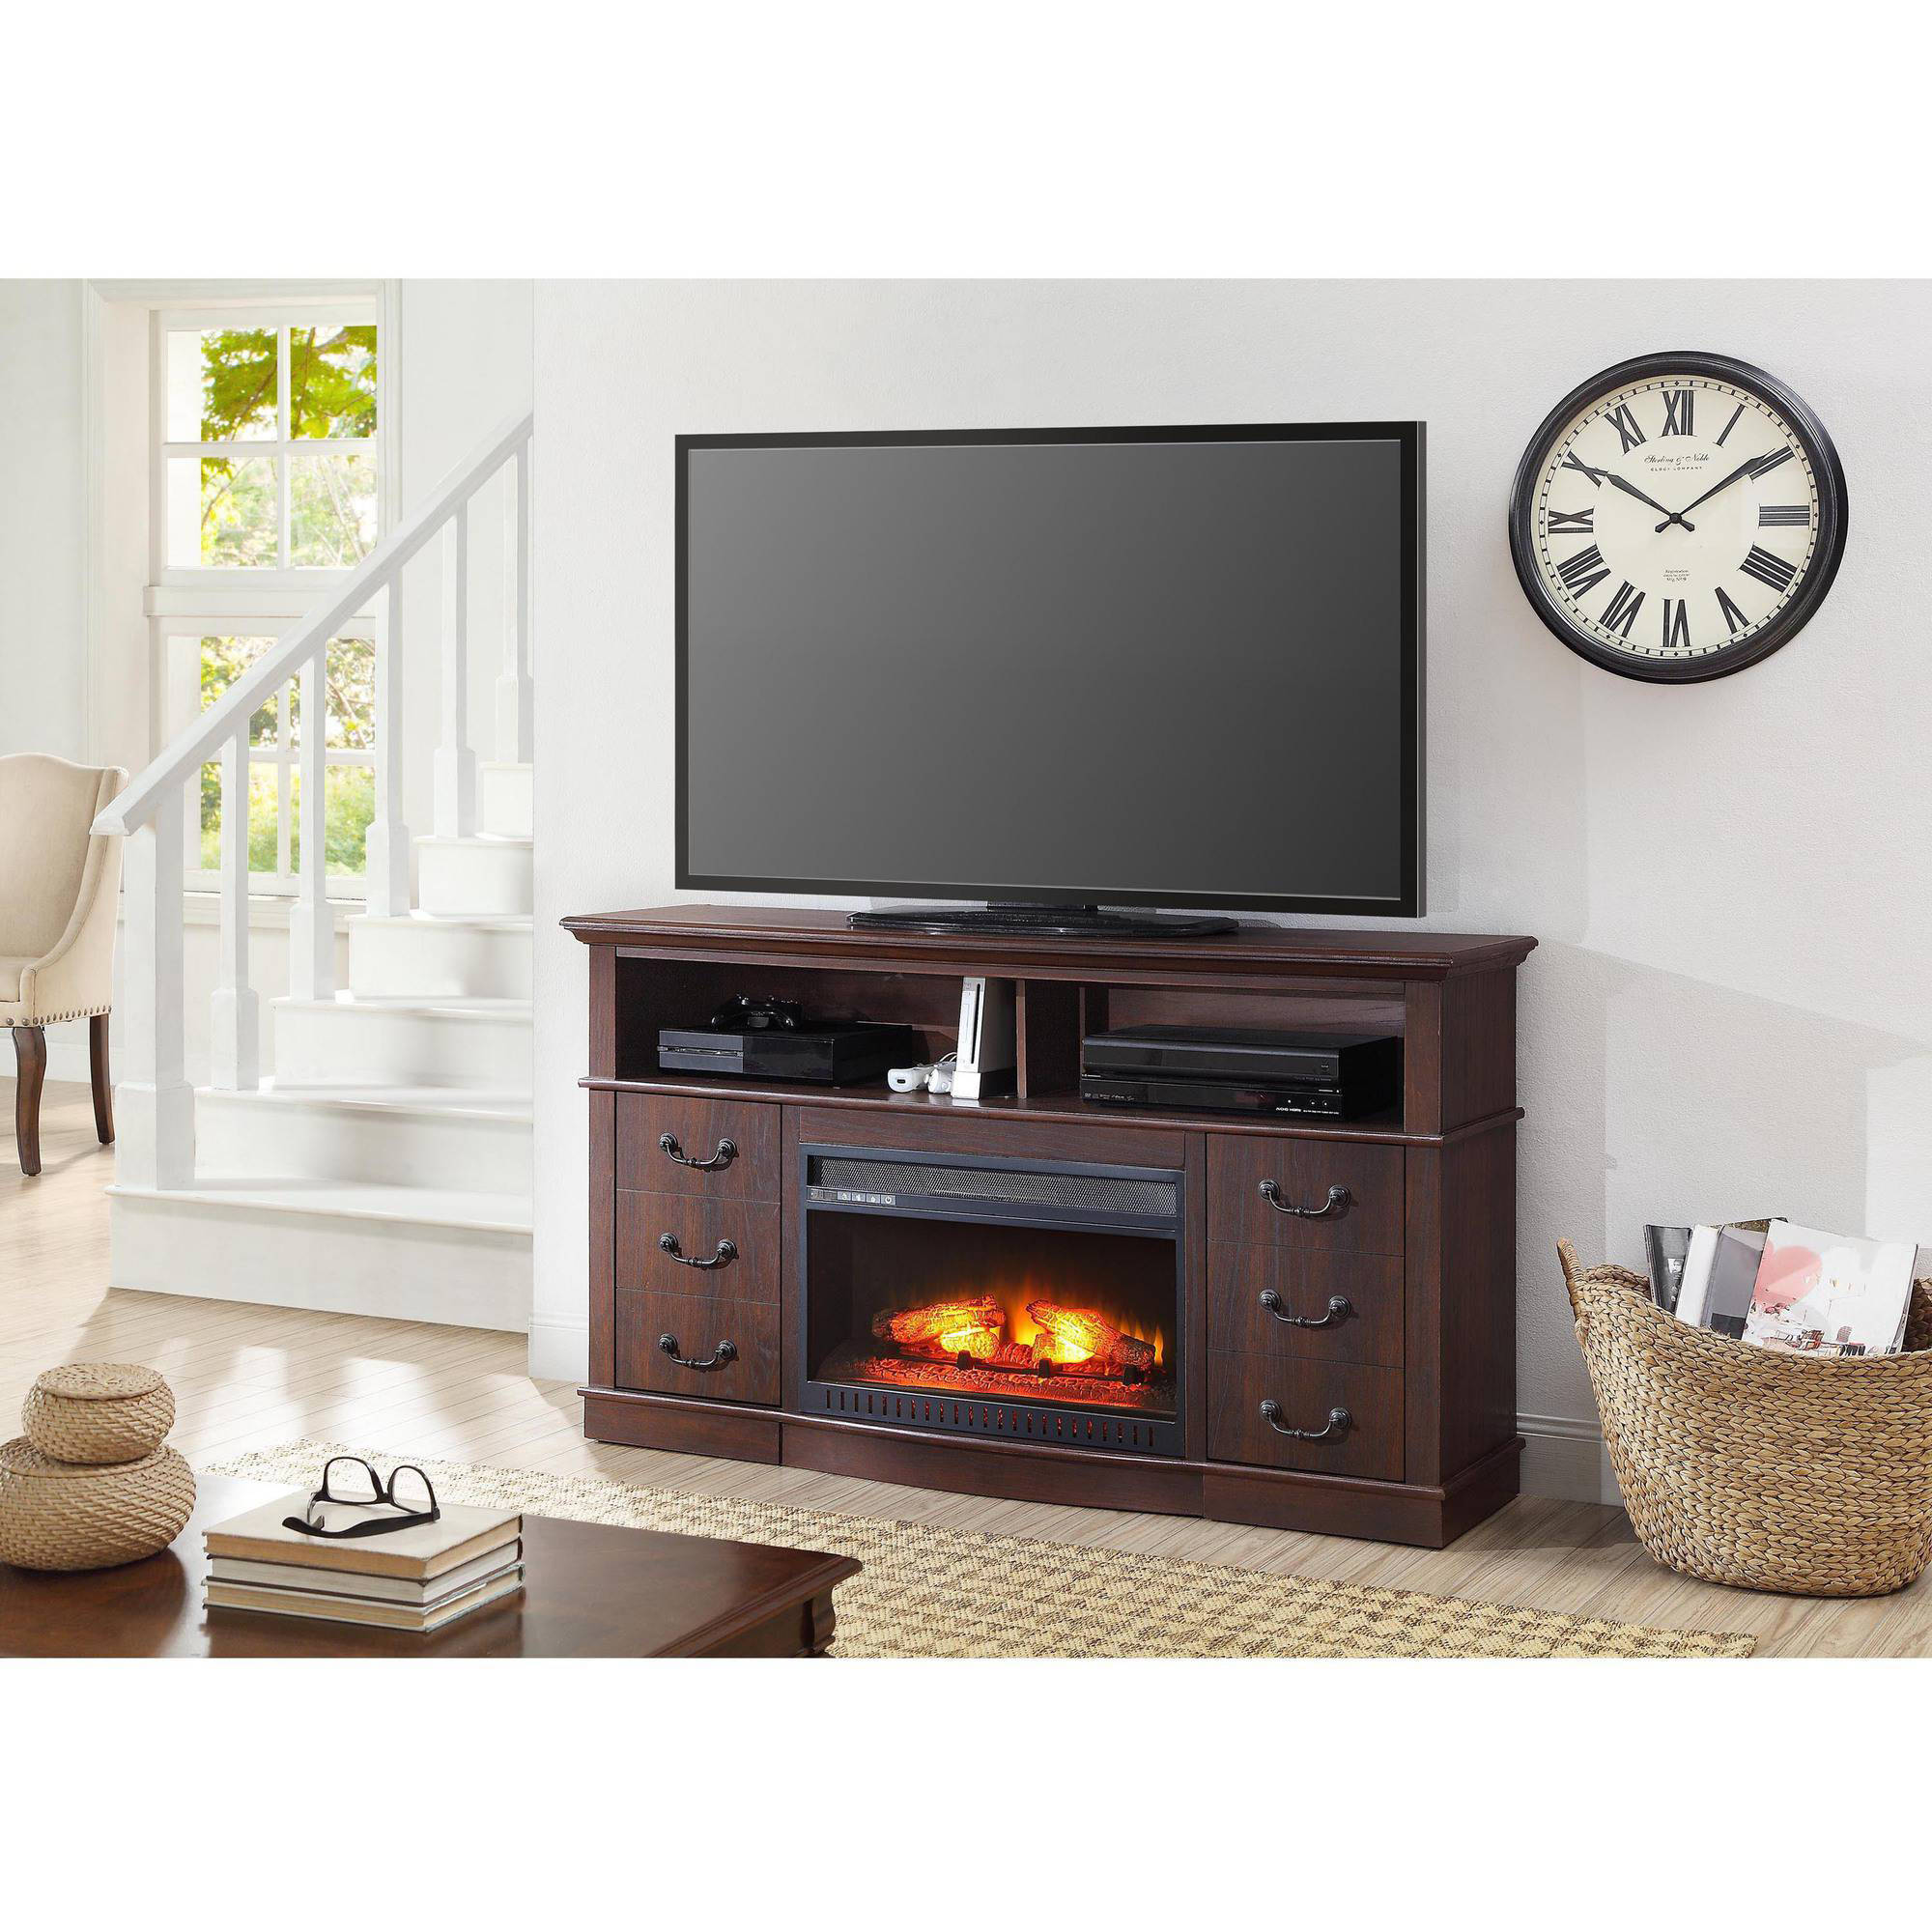 "Better Homes and Gardens 60"" Media Fireplace Console for TVs up to 70"", Multiple Finishes"